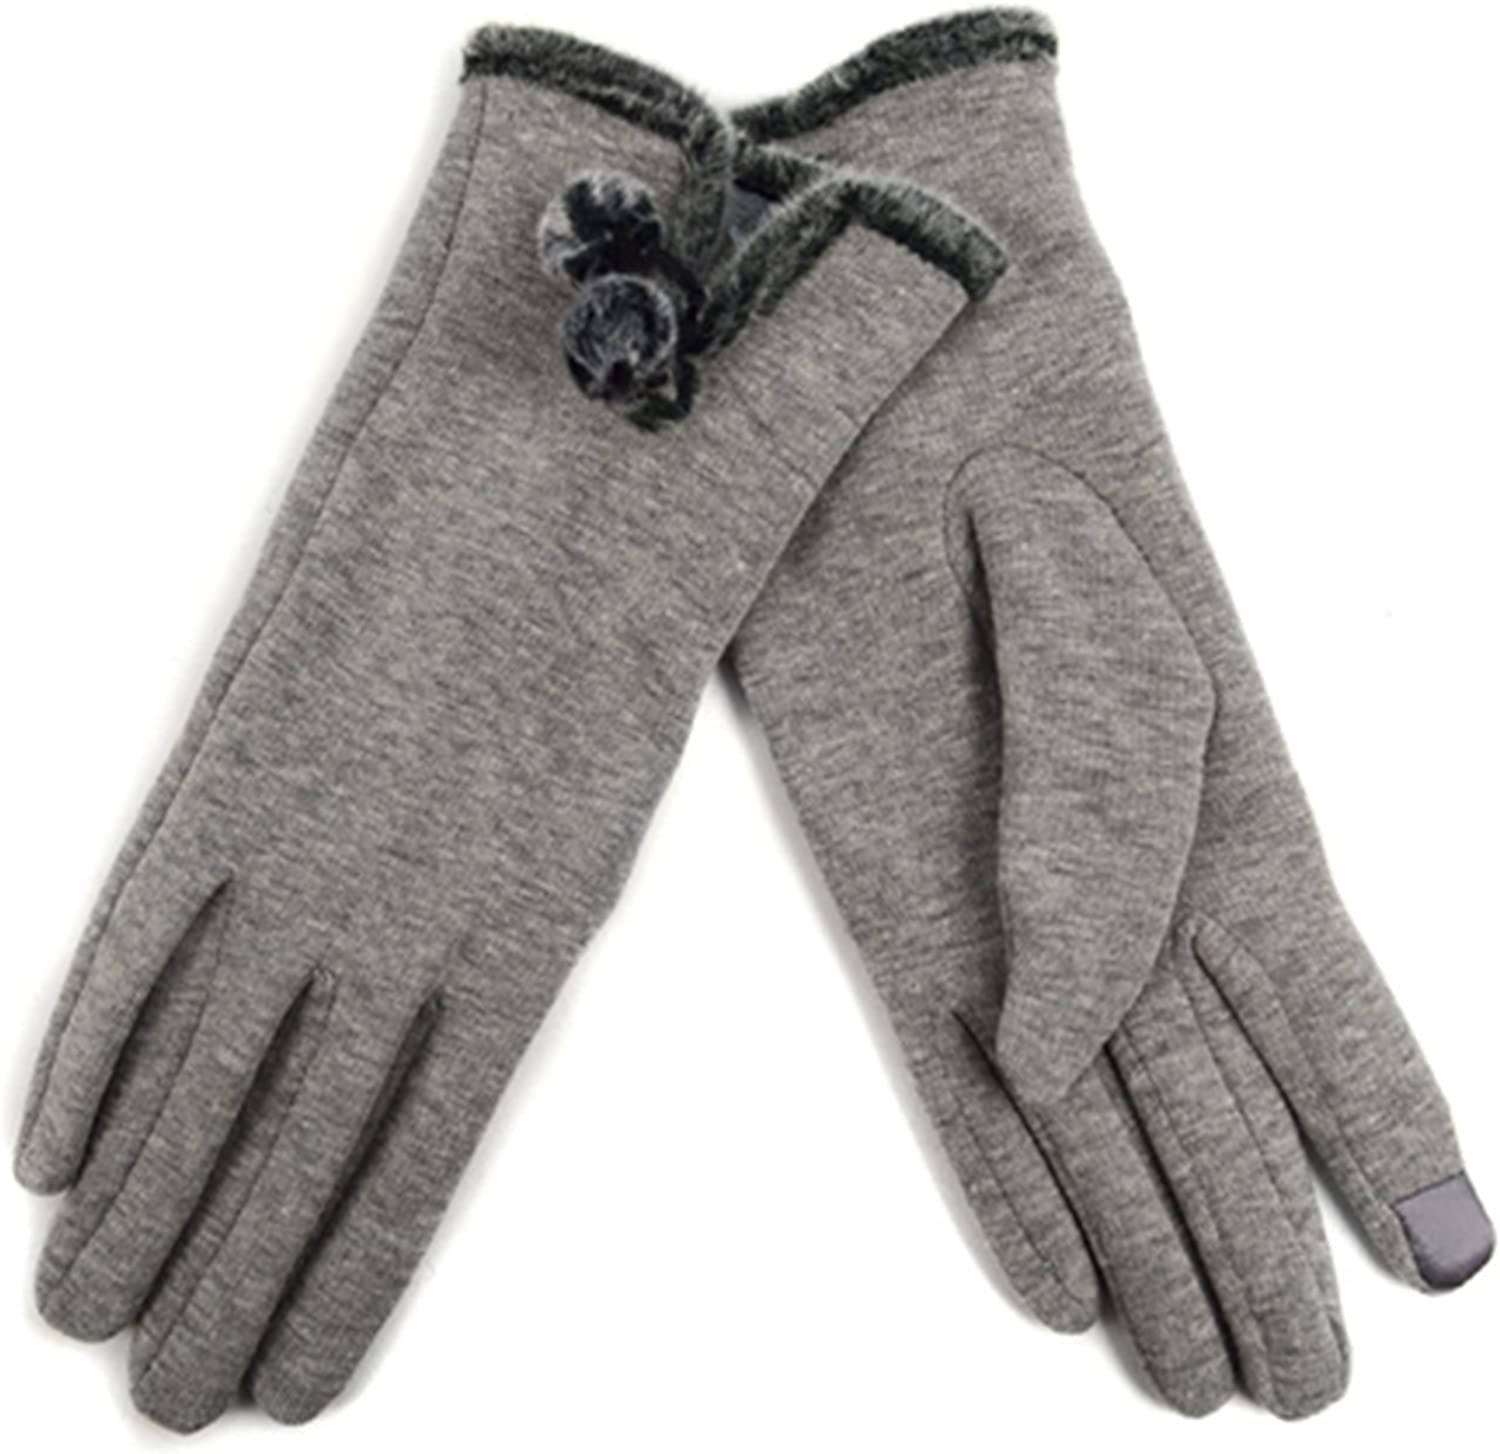 Women's Silver Grey Stylish Touch Screen Gloves with Fur Trim & Fleece Lining - S/M